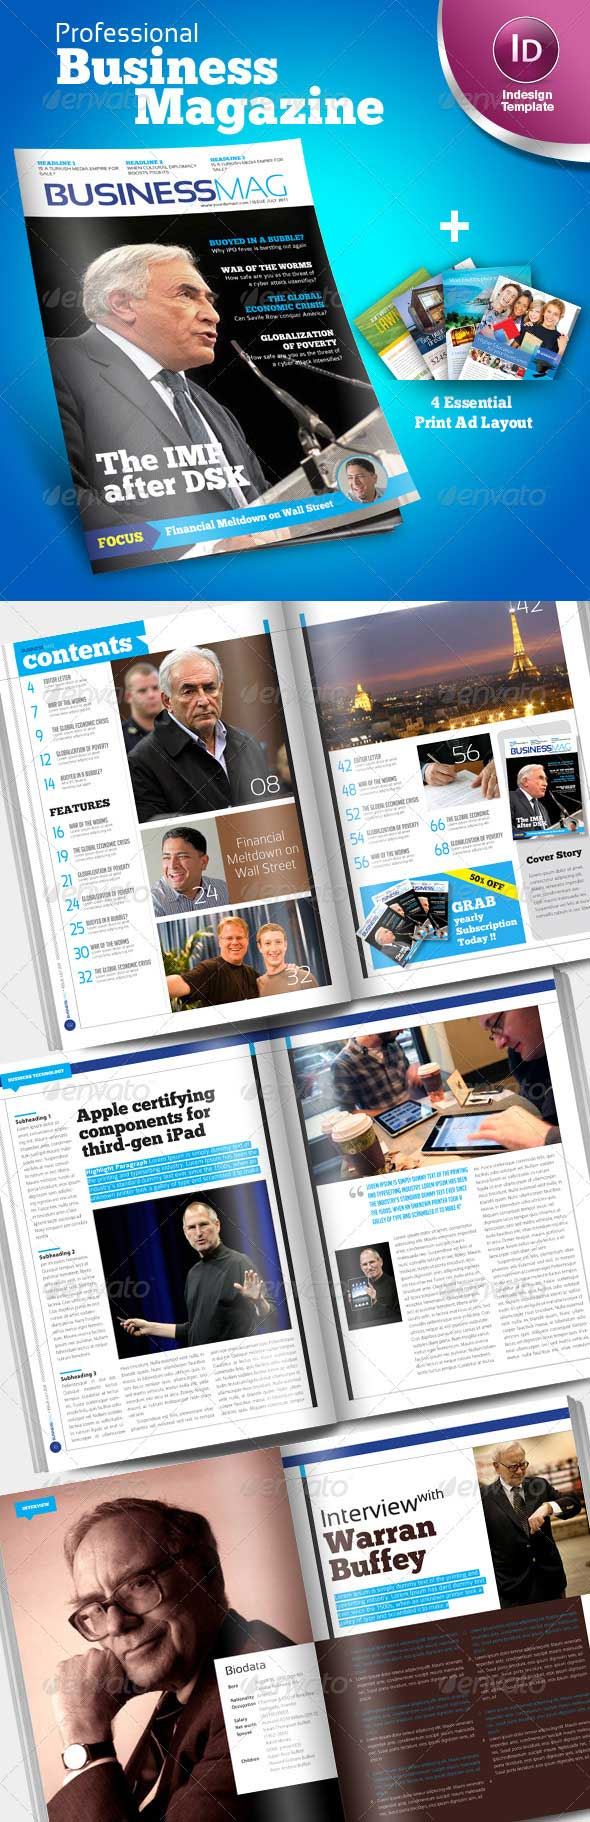 profesional-business-magazine-indesign-template